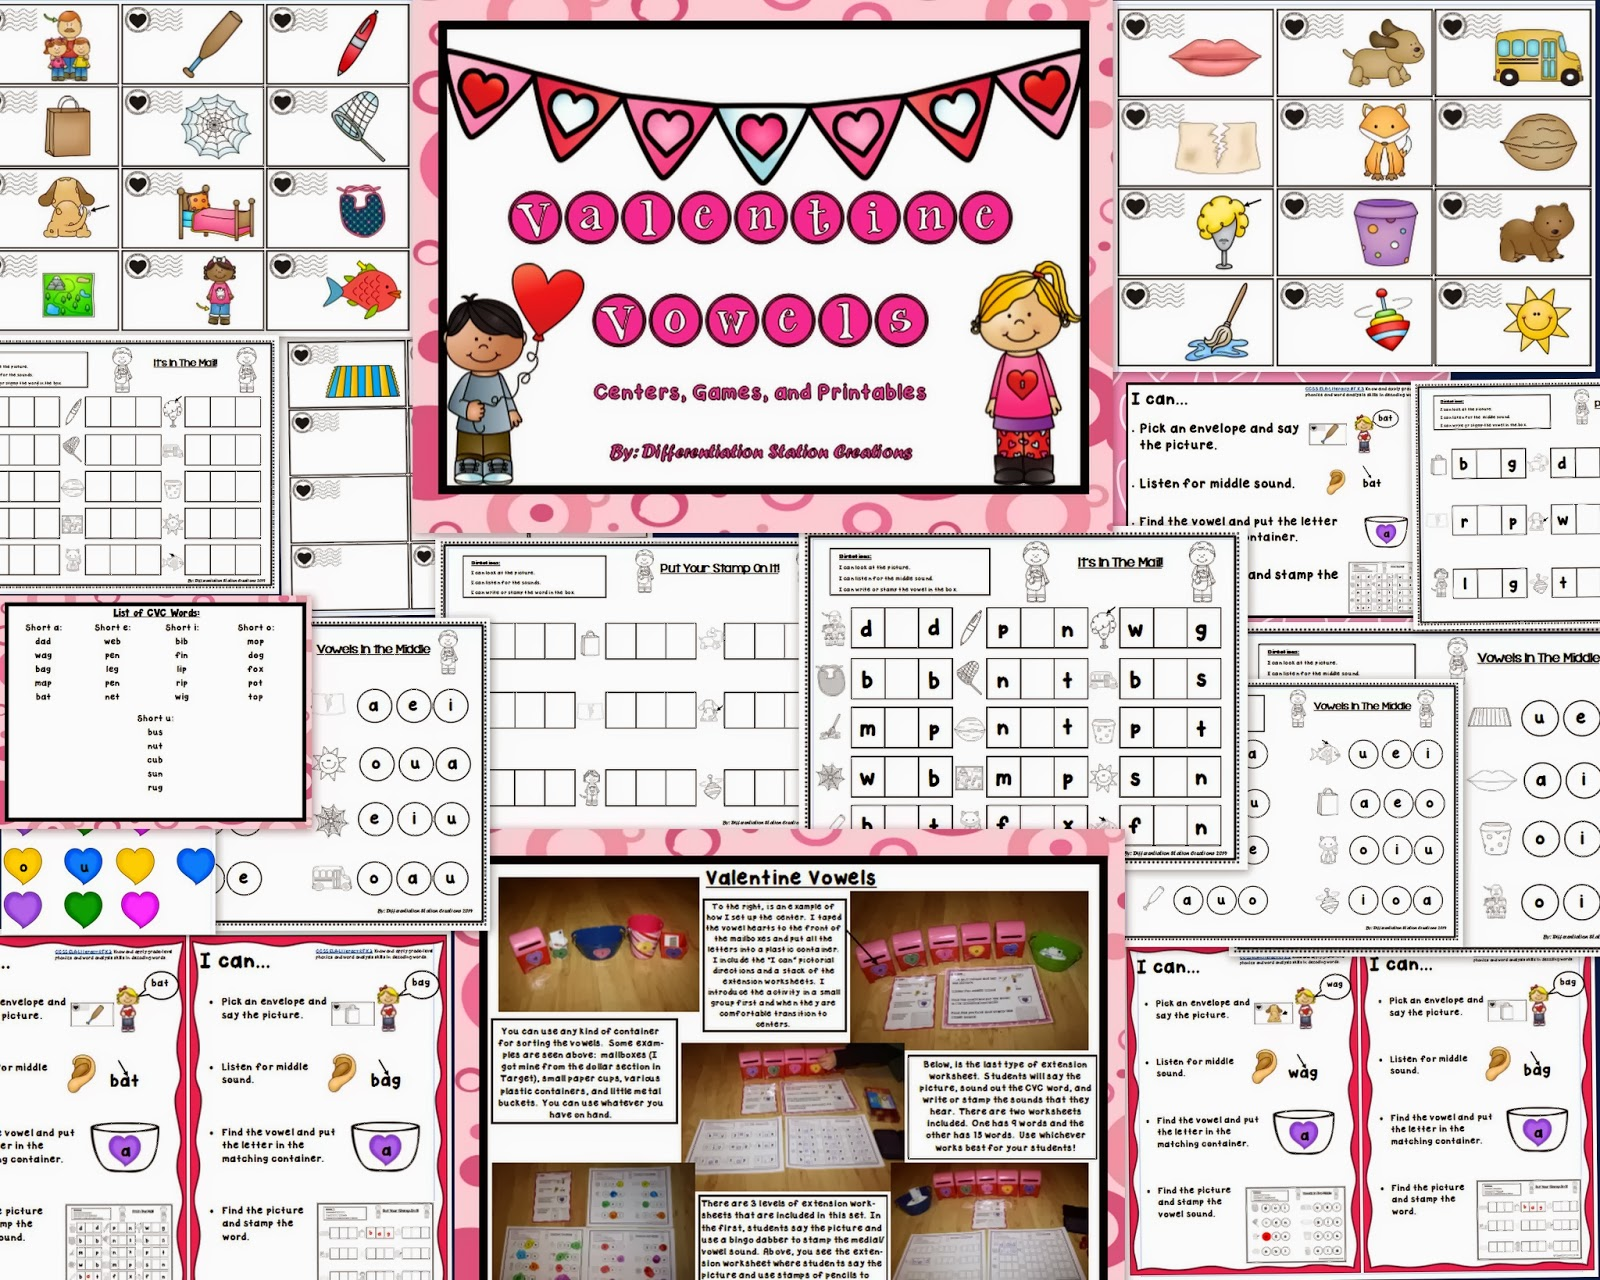 http://www.teacherspayteachers.com/Product/Valentine-Vowels-CVC-Words-Medial-Vowel-Sounds-Center-Printables-1103033